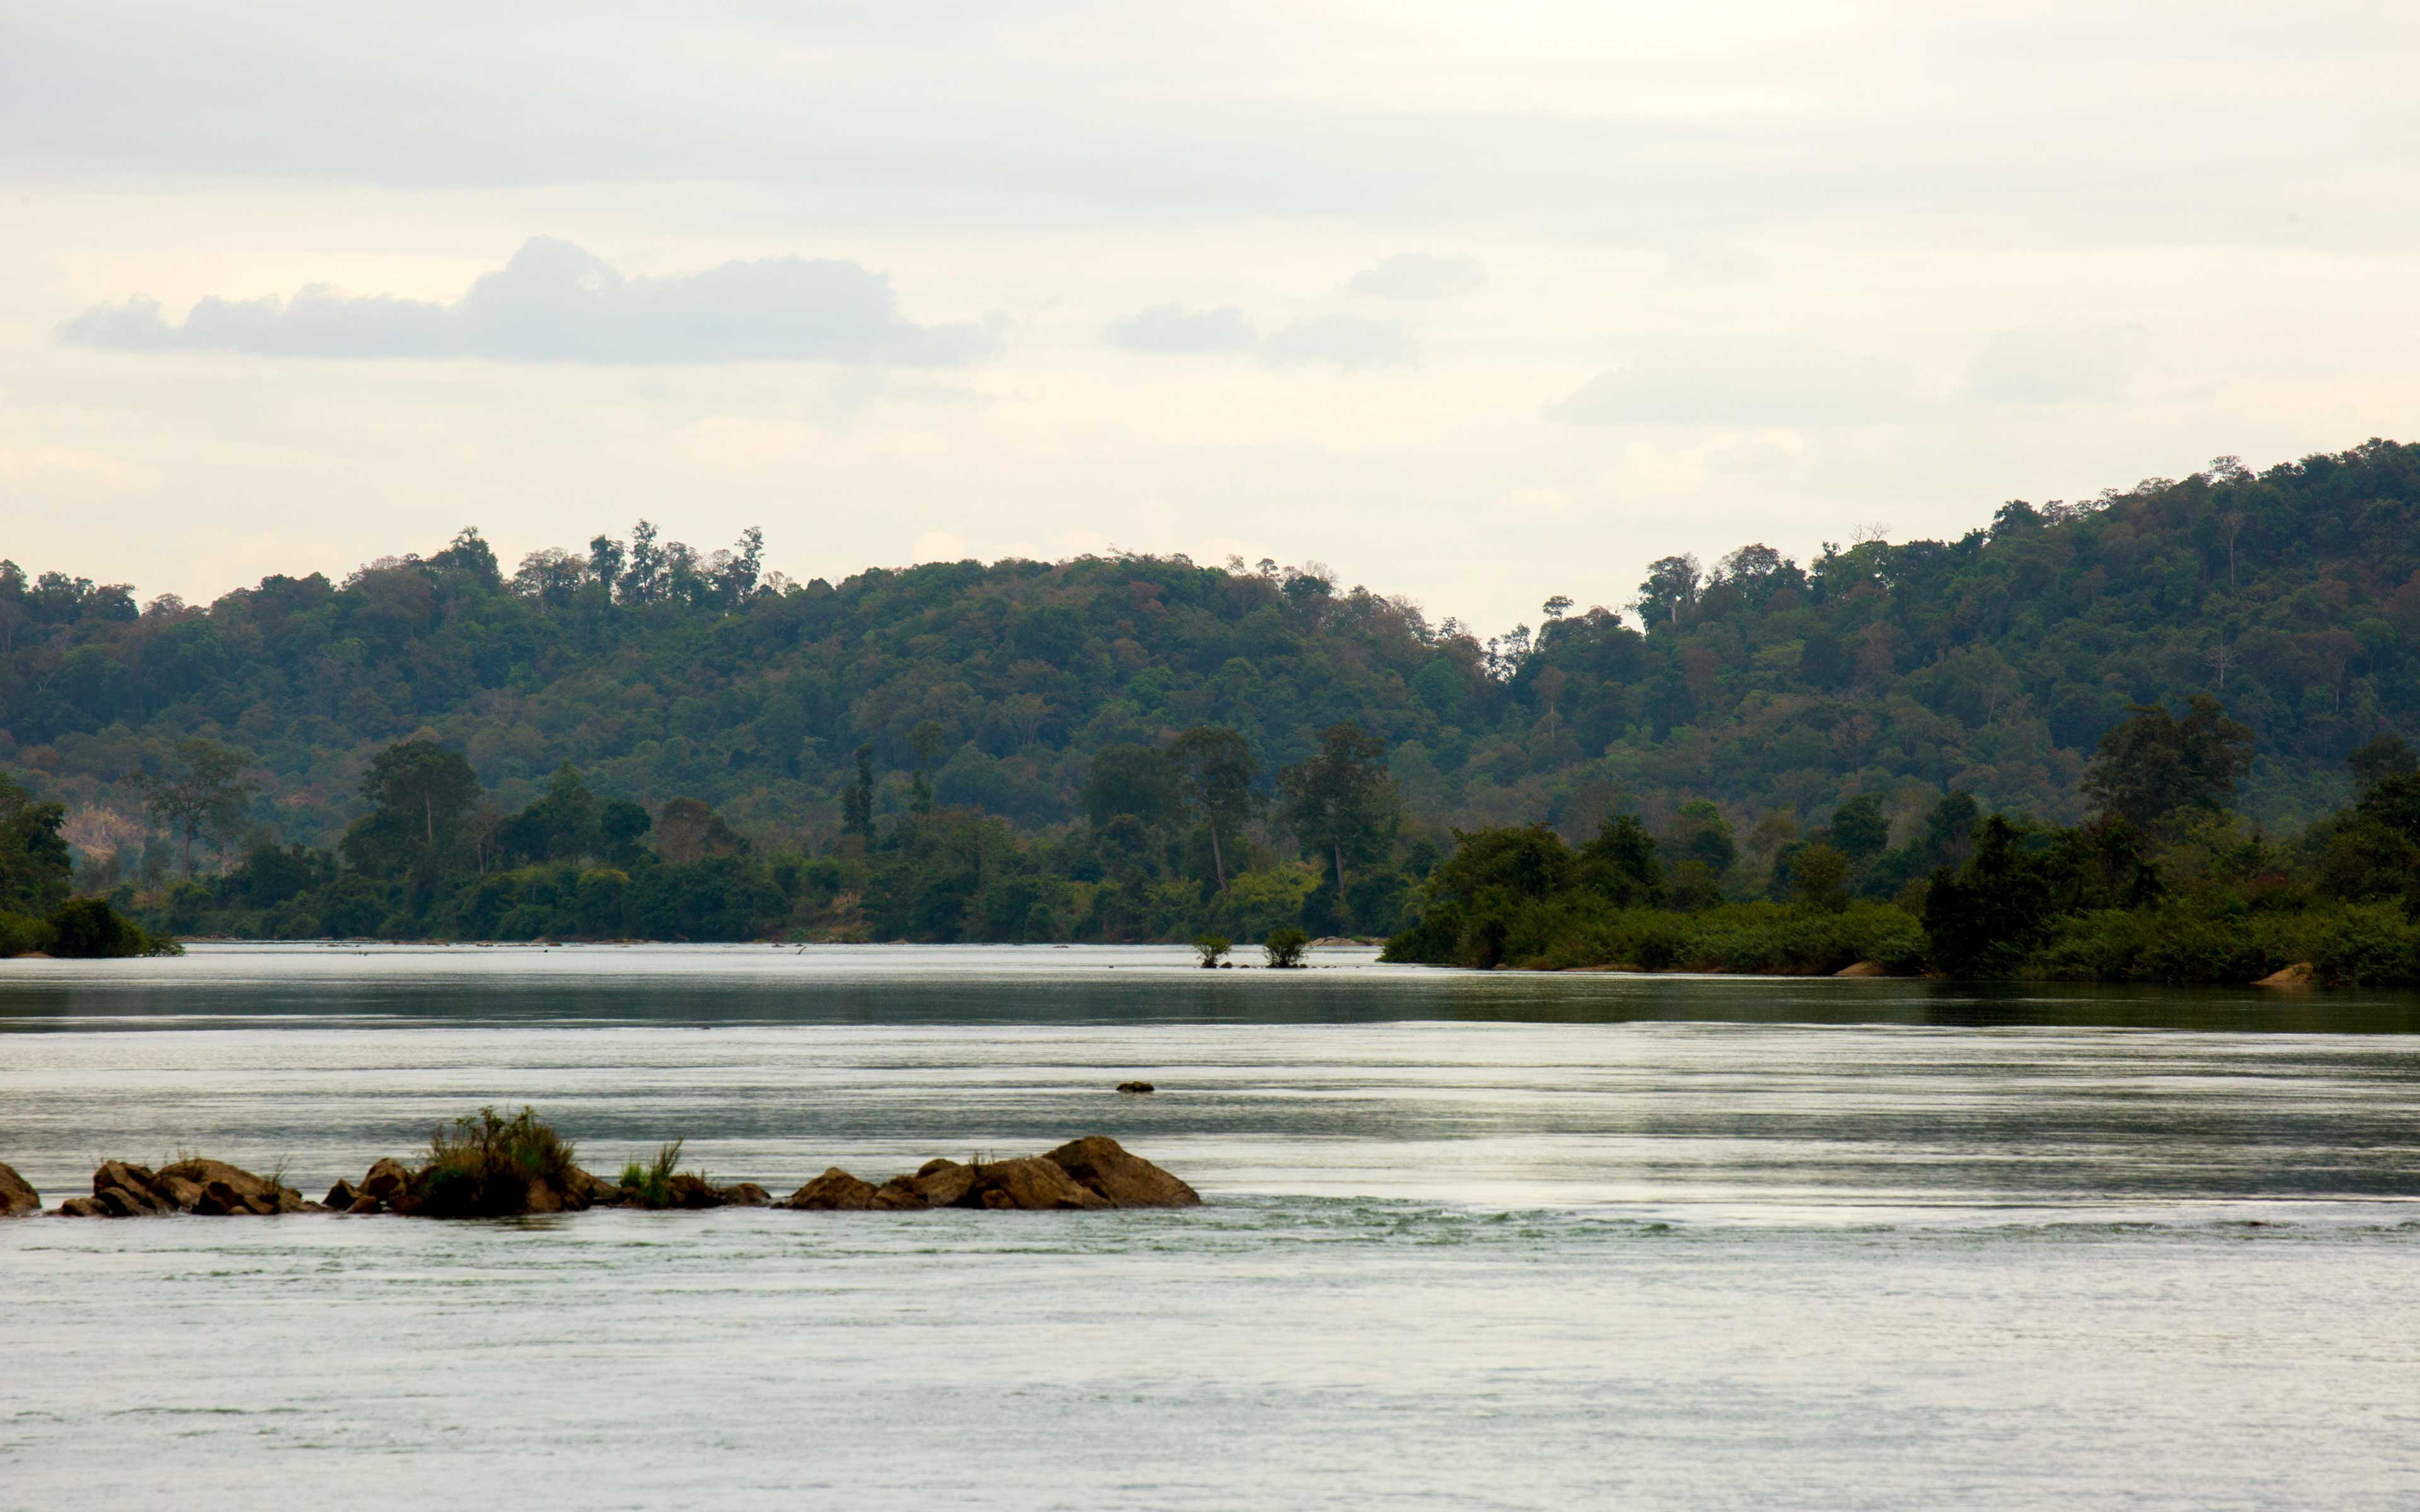 Jarai people in Padol are trying to protect their ancestral forest lands on both sides of the Sesan River in Ratanakiri province.